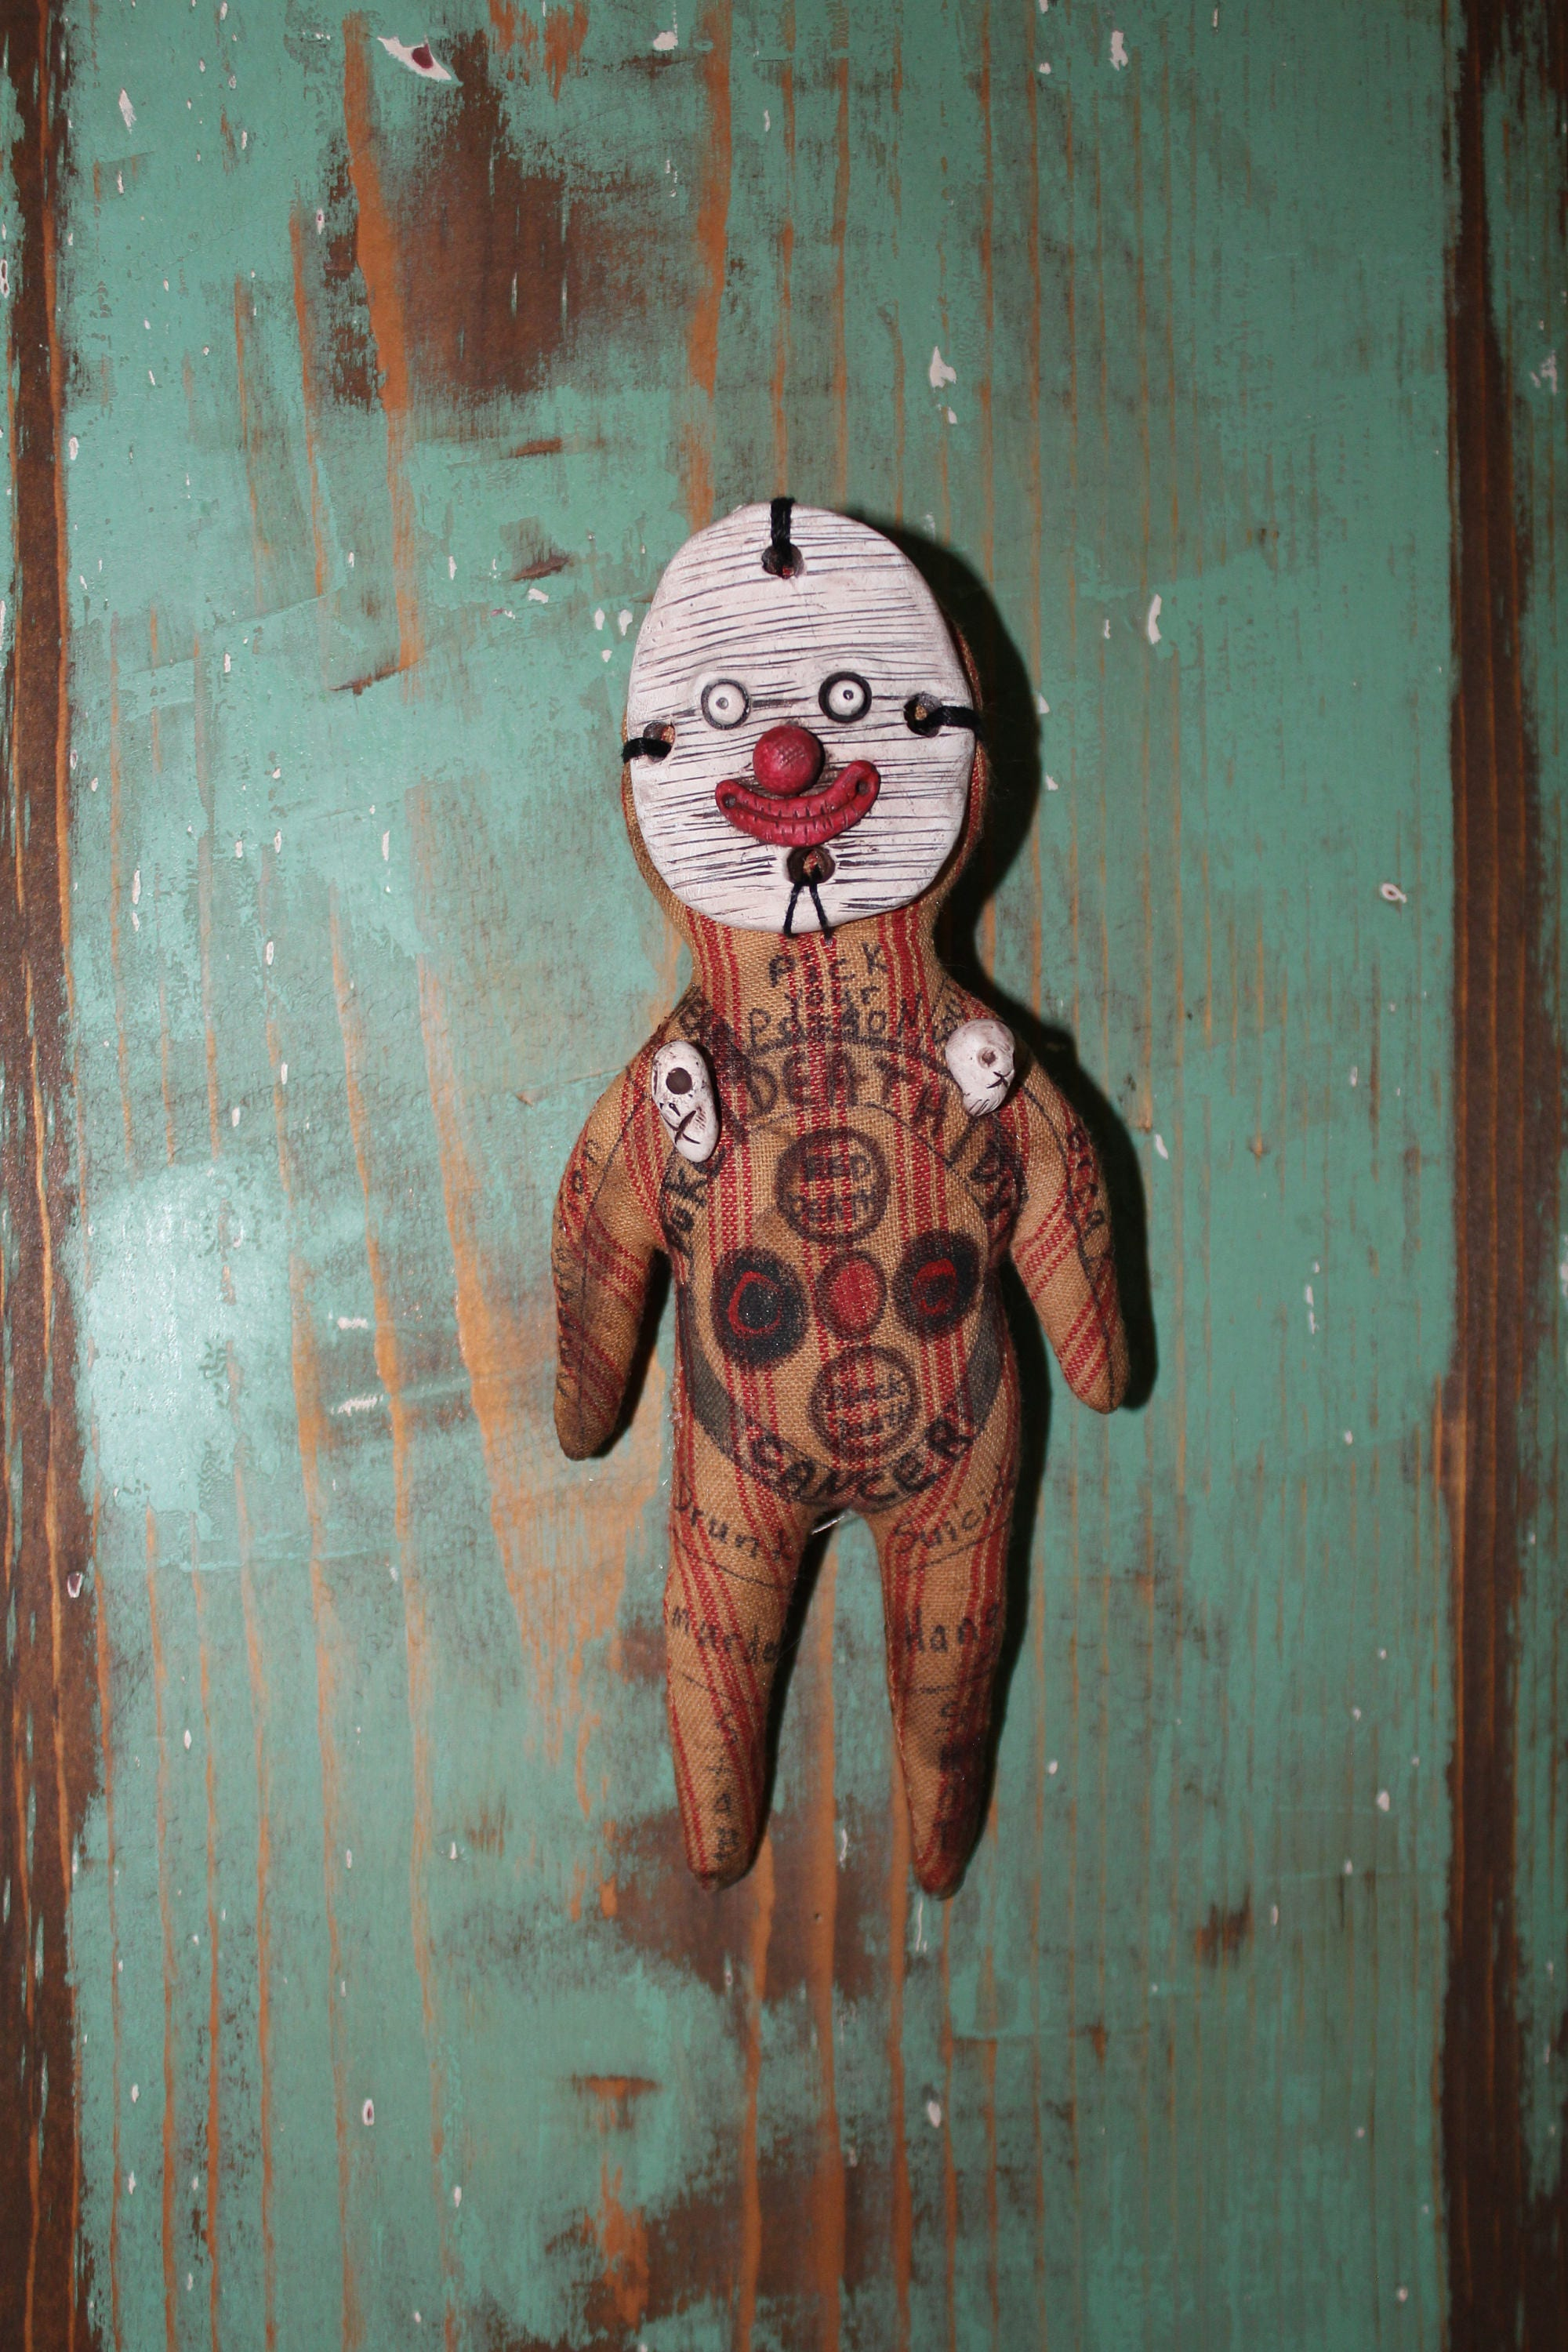 Vintage wooden music stand book stand by vintagearcheology on etsy - Original Handmade Voodoo Hoodoo Clown Art Doll Circus Fetish For Macabre Carnival Display Or Witch Poppet